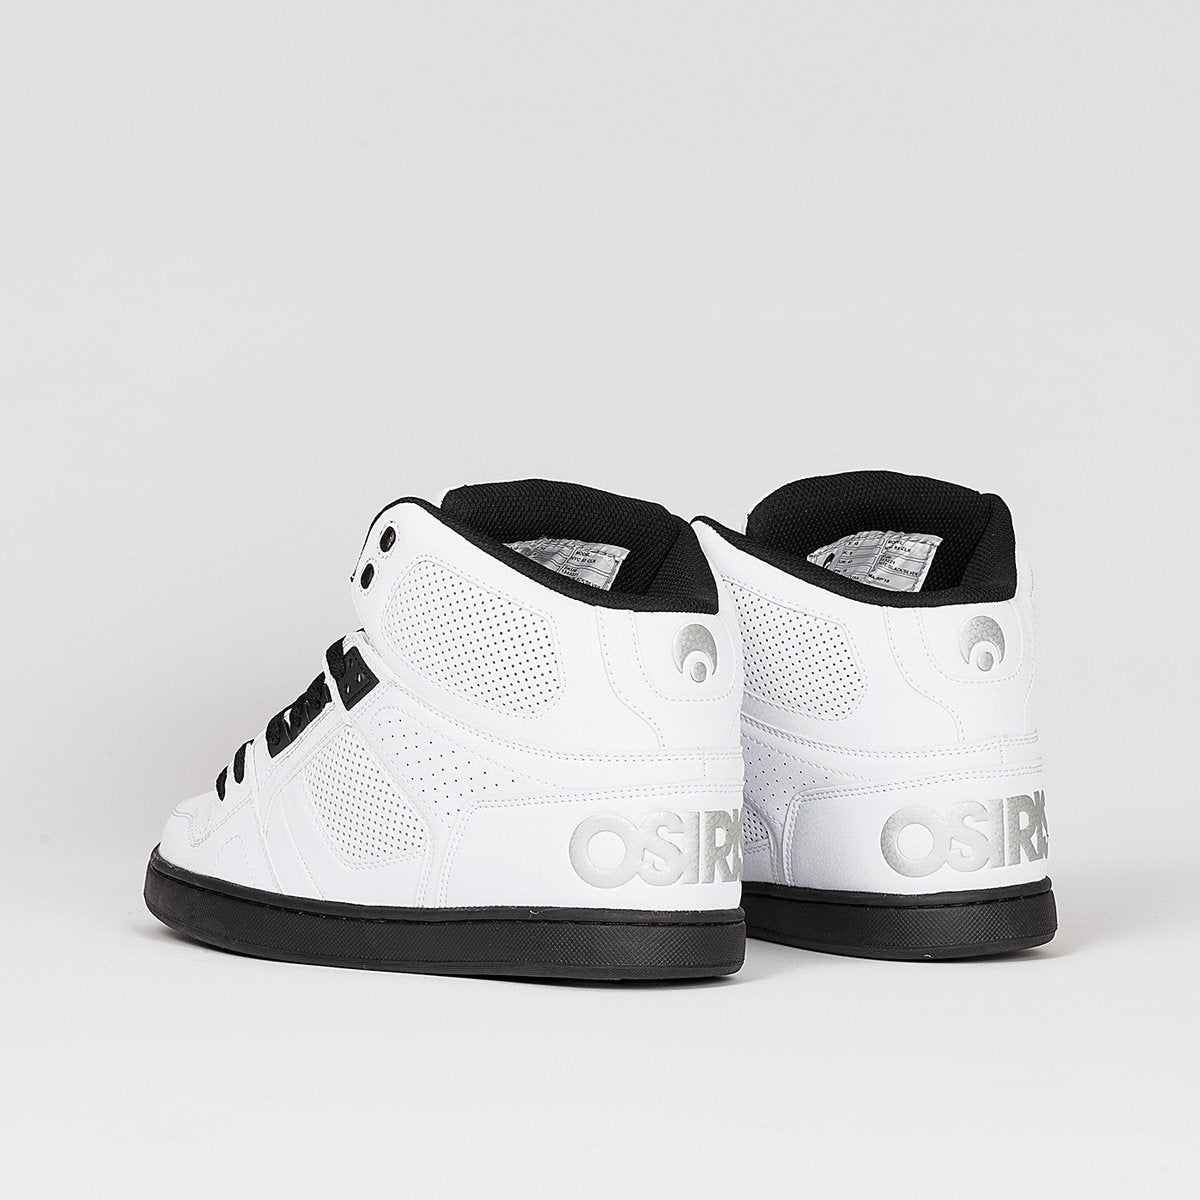 Osiris NYC83 CLK White/Black/Silver - Footwear